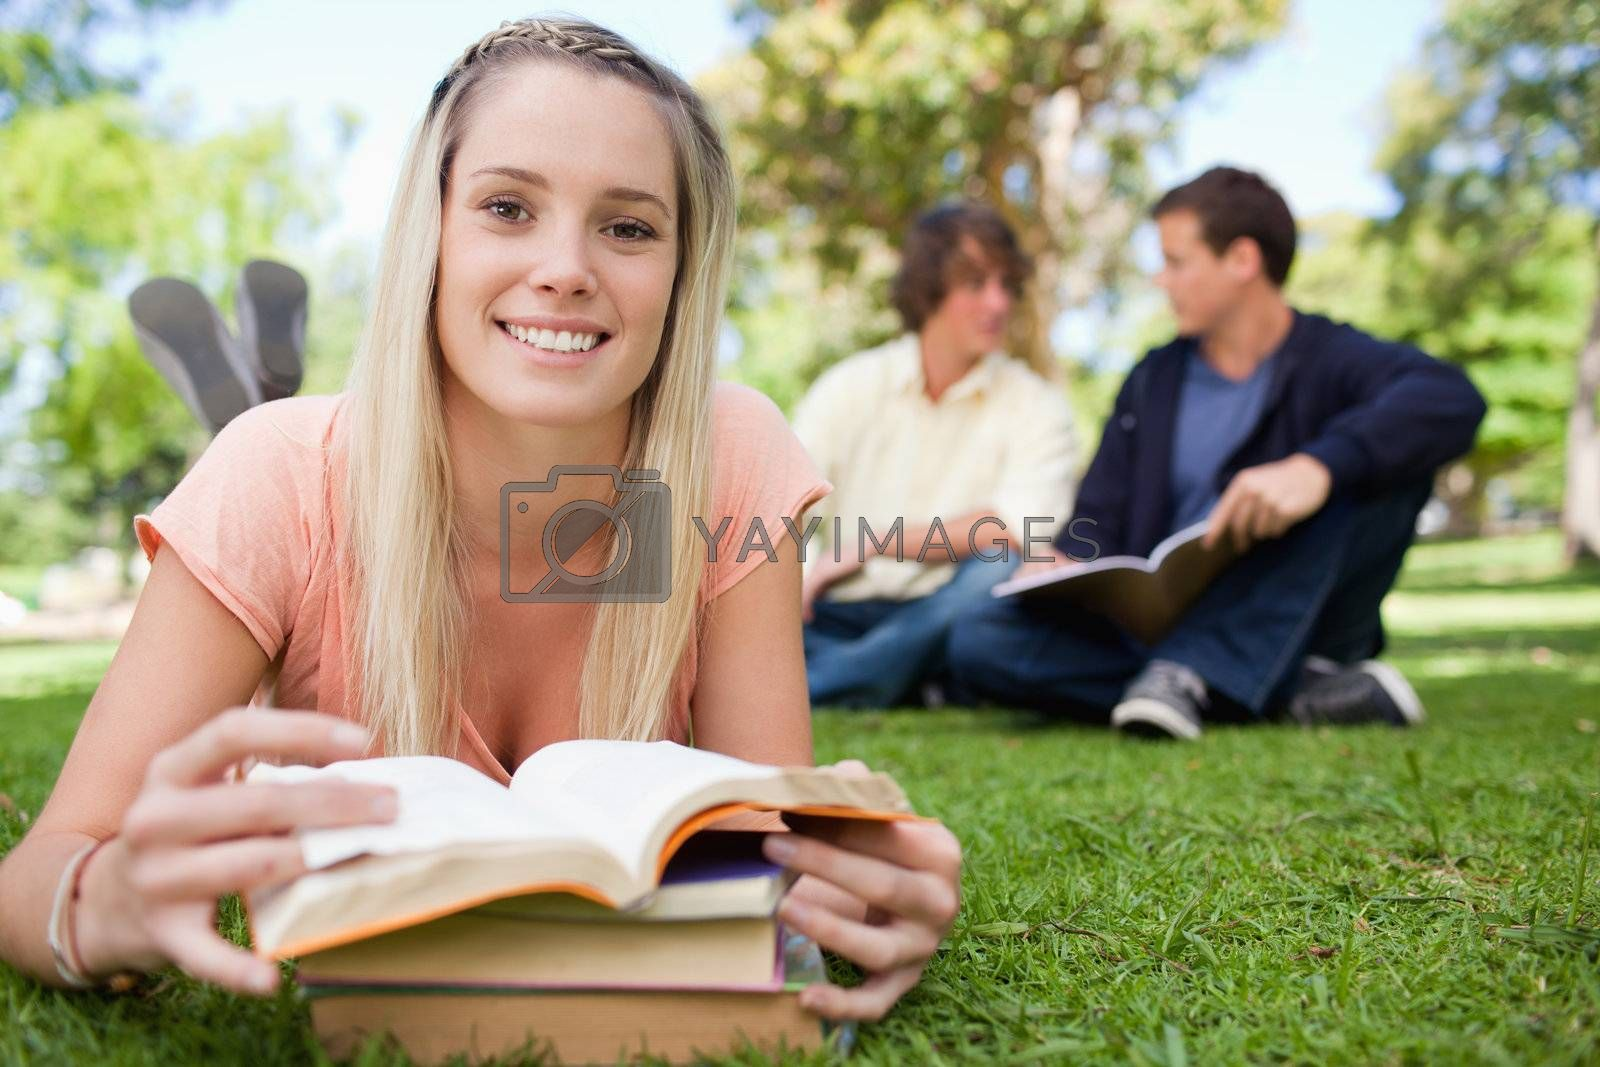 Smiling a girl lying in front of her books in a park with friends in background